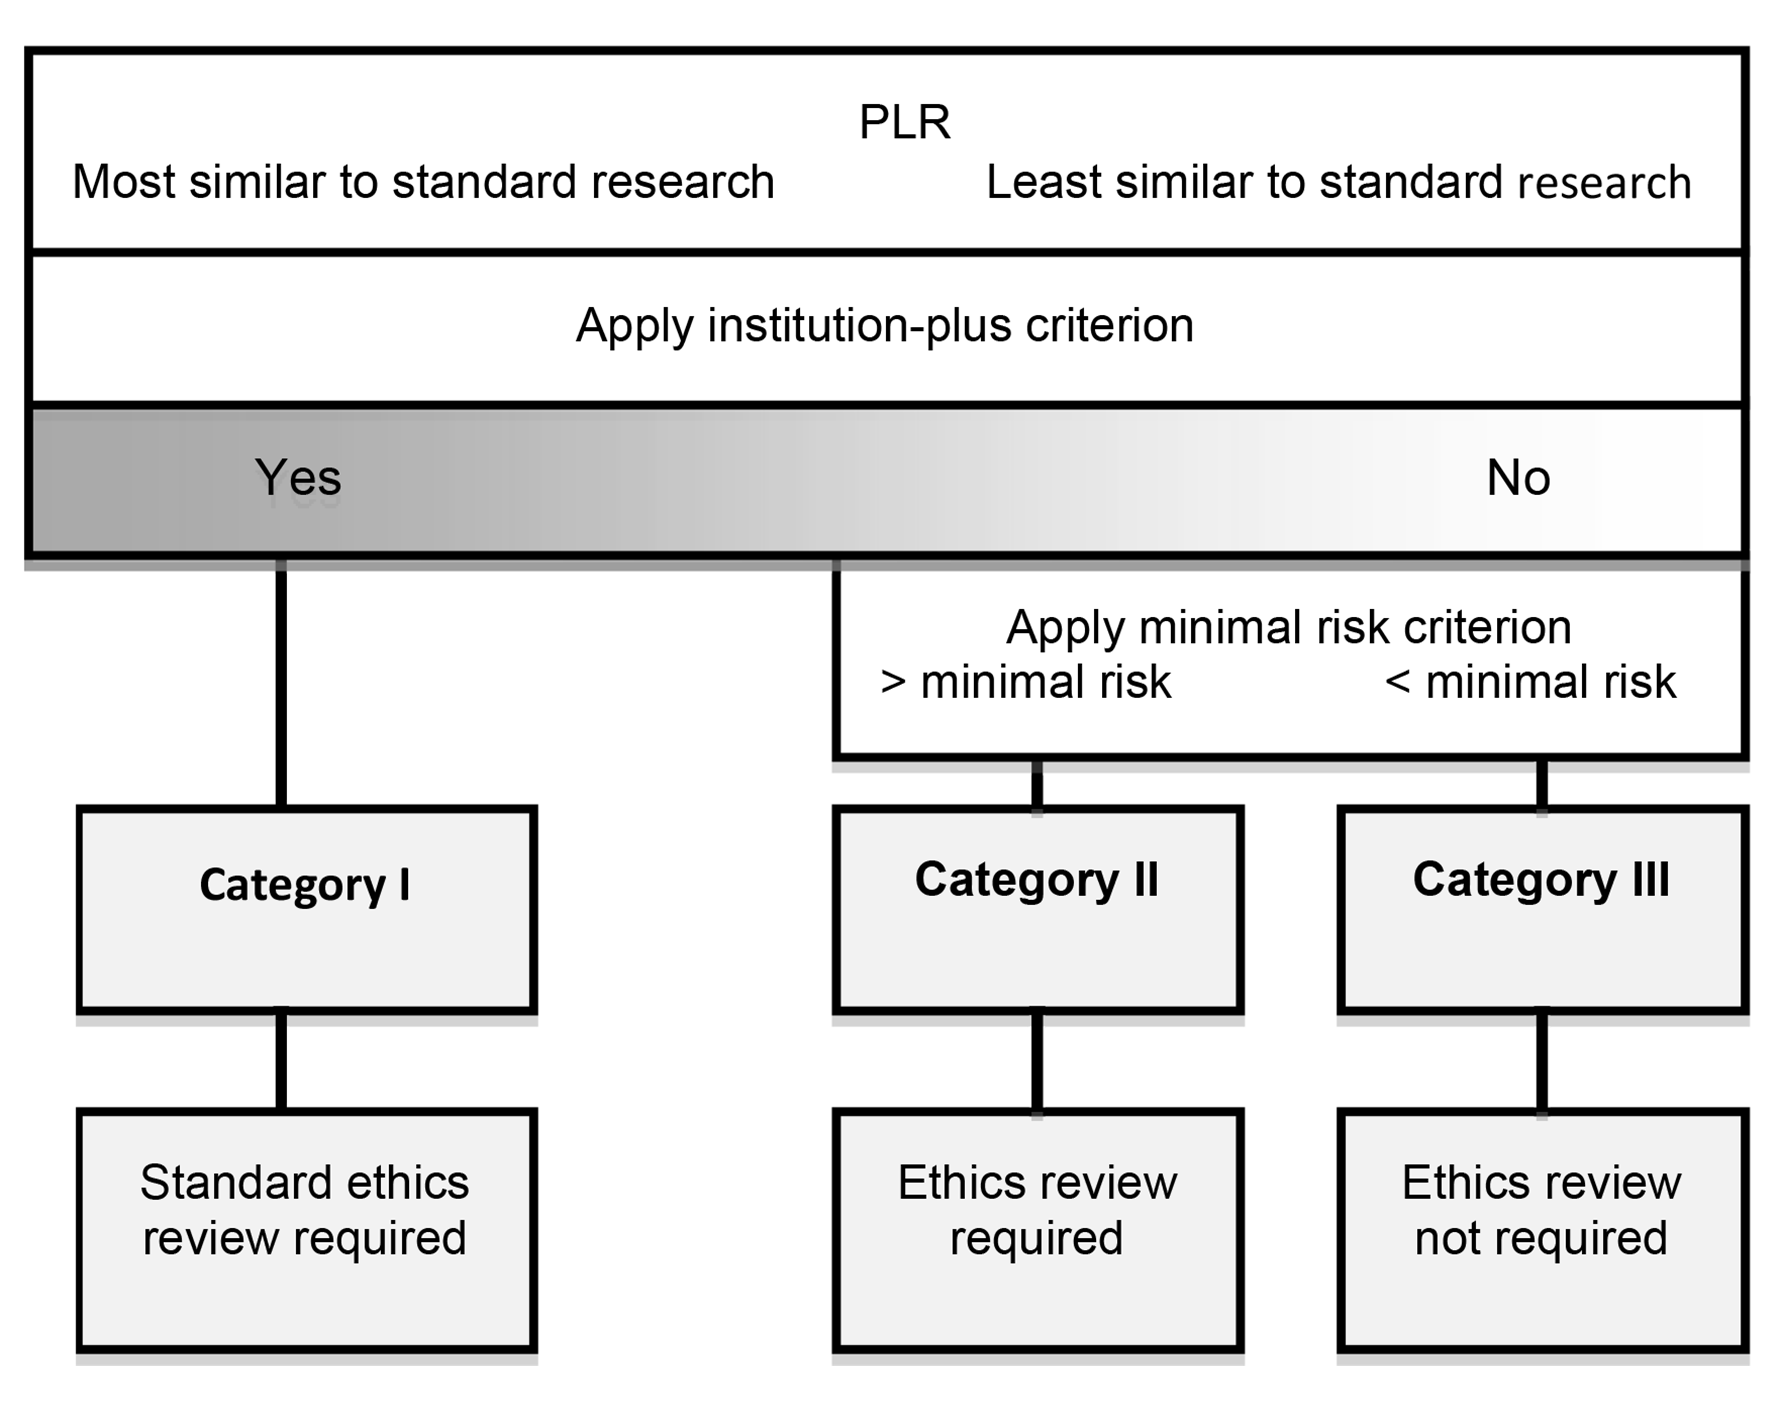 A proposal for ethical oversight of PLR.